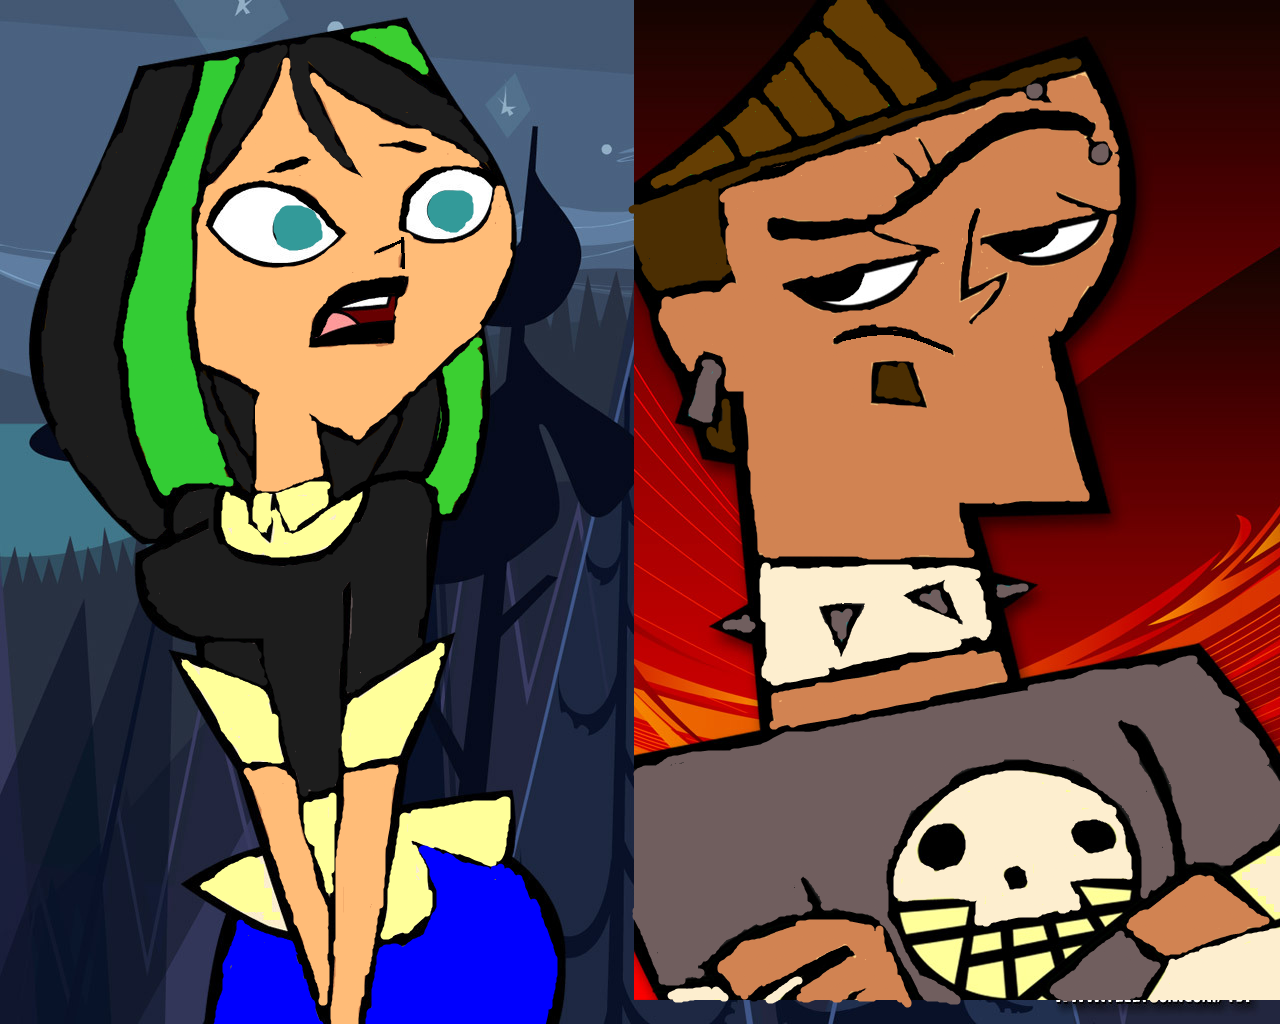 Total drama island duncan and courtney